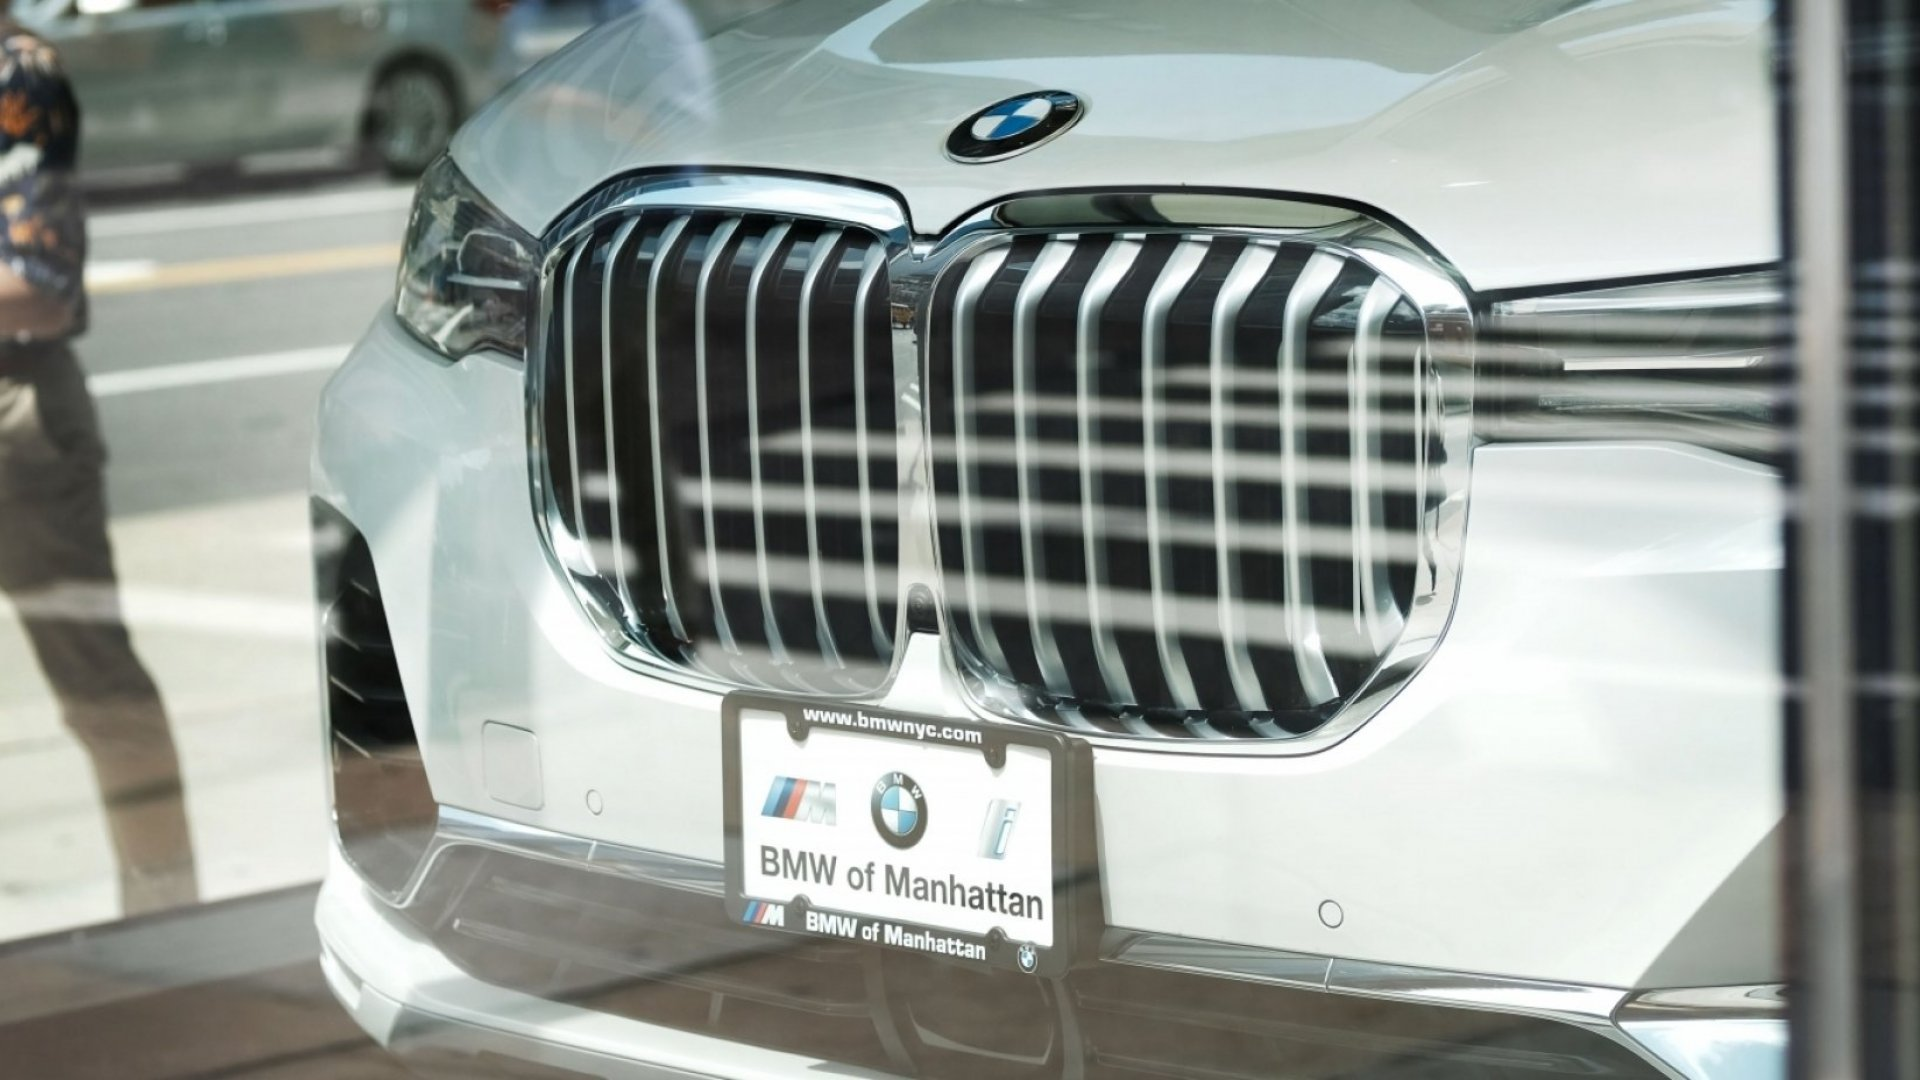 Oh, that grille.